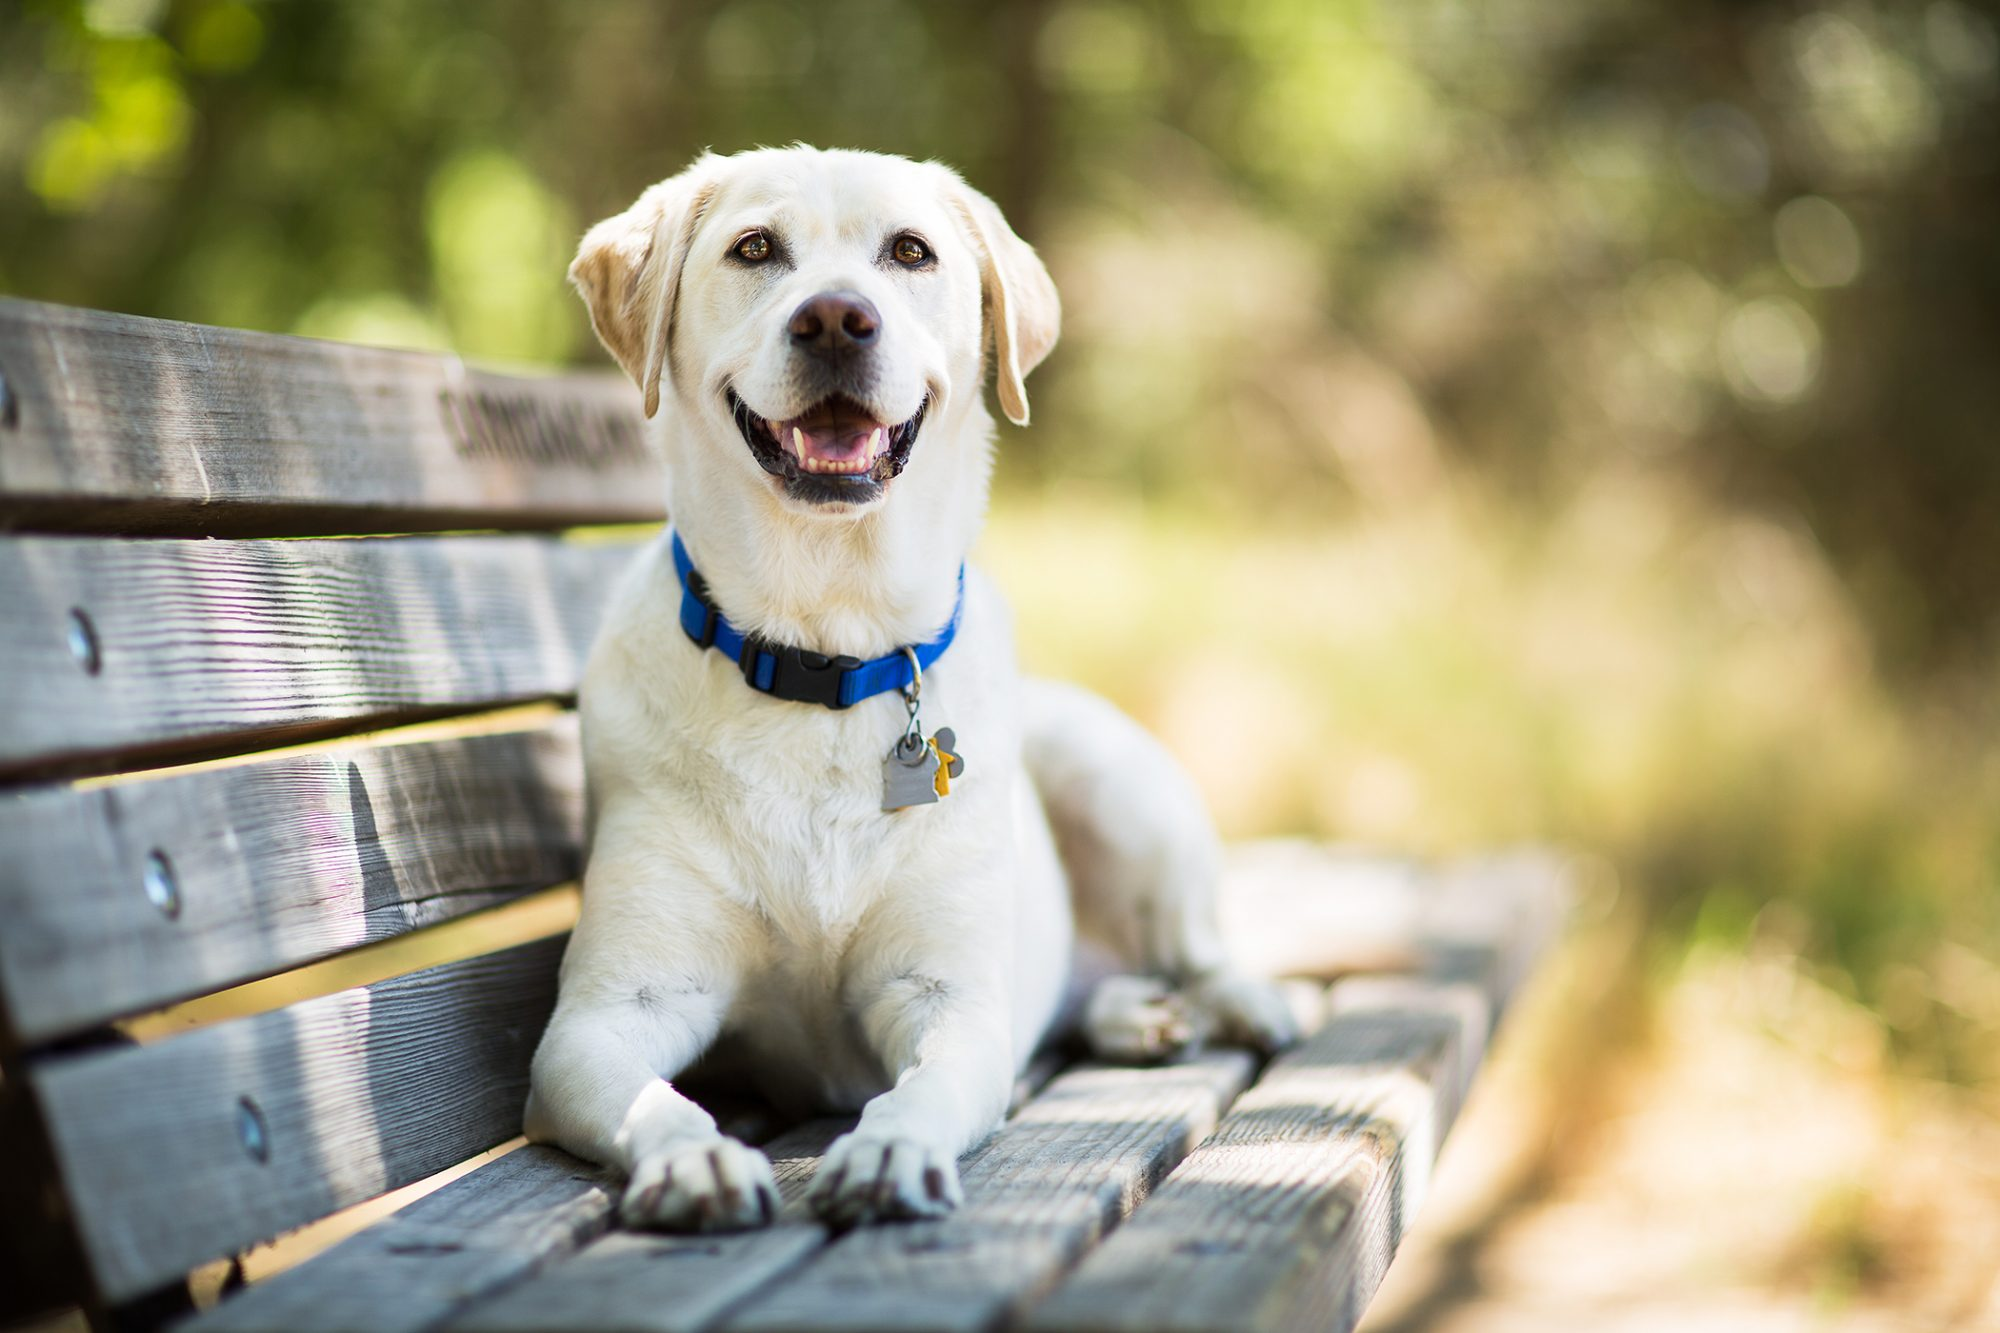 lab smiling on bench